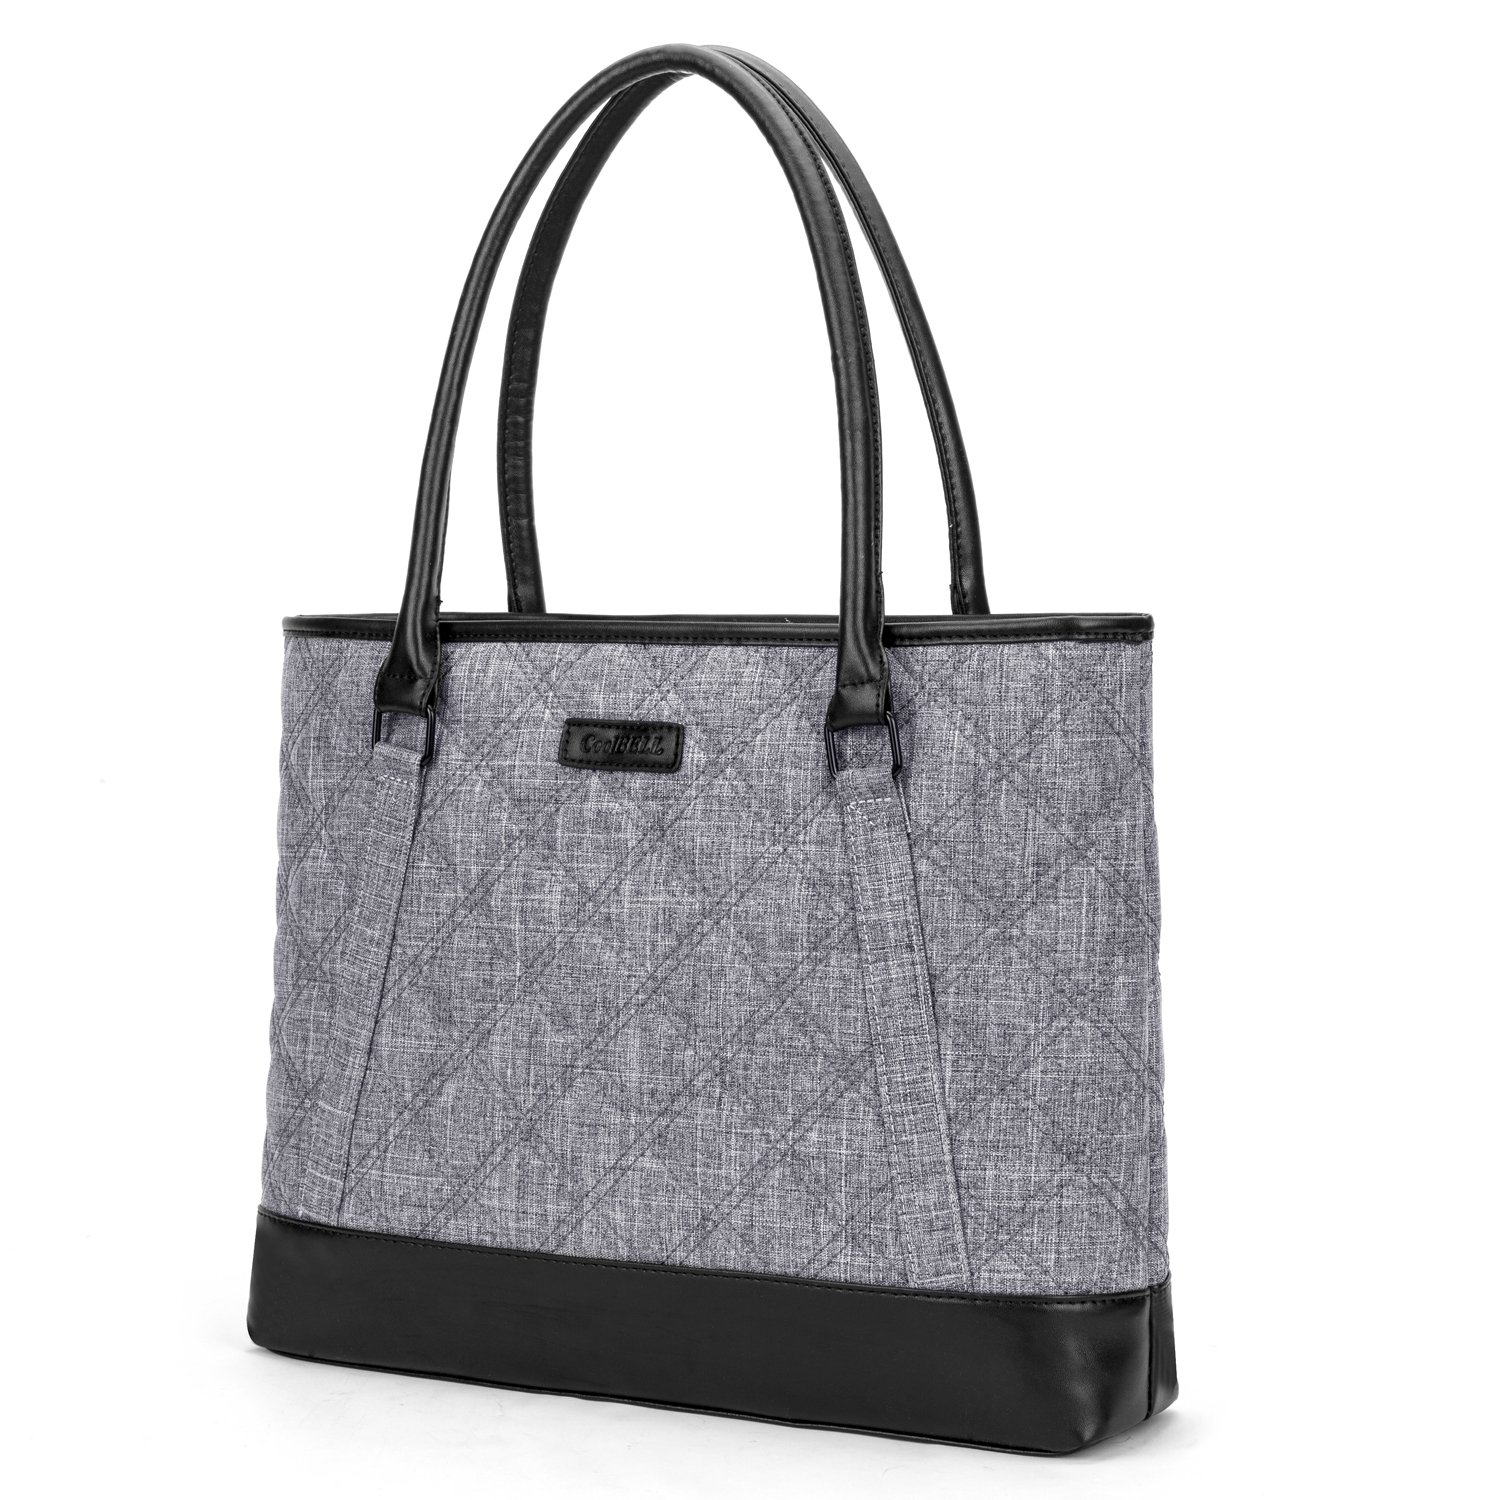 CoolBELL Women Tote Bag 15.6 Inch Laptop Handbag Nylon Briefcase Classic Shoulder Bag Top Handle Bag (Grey)